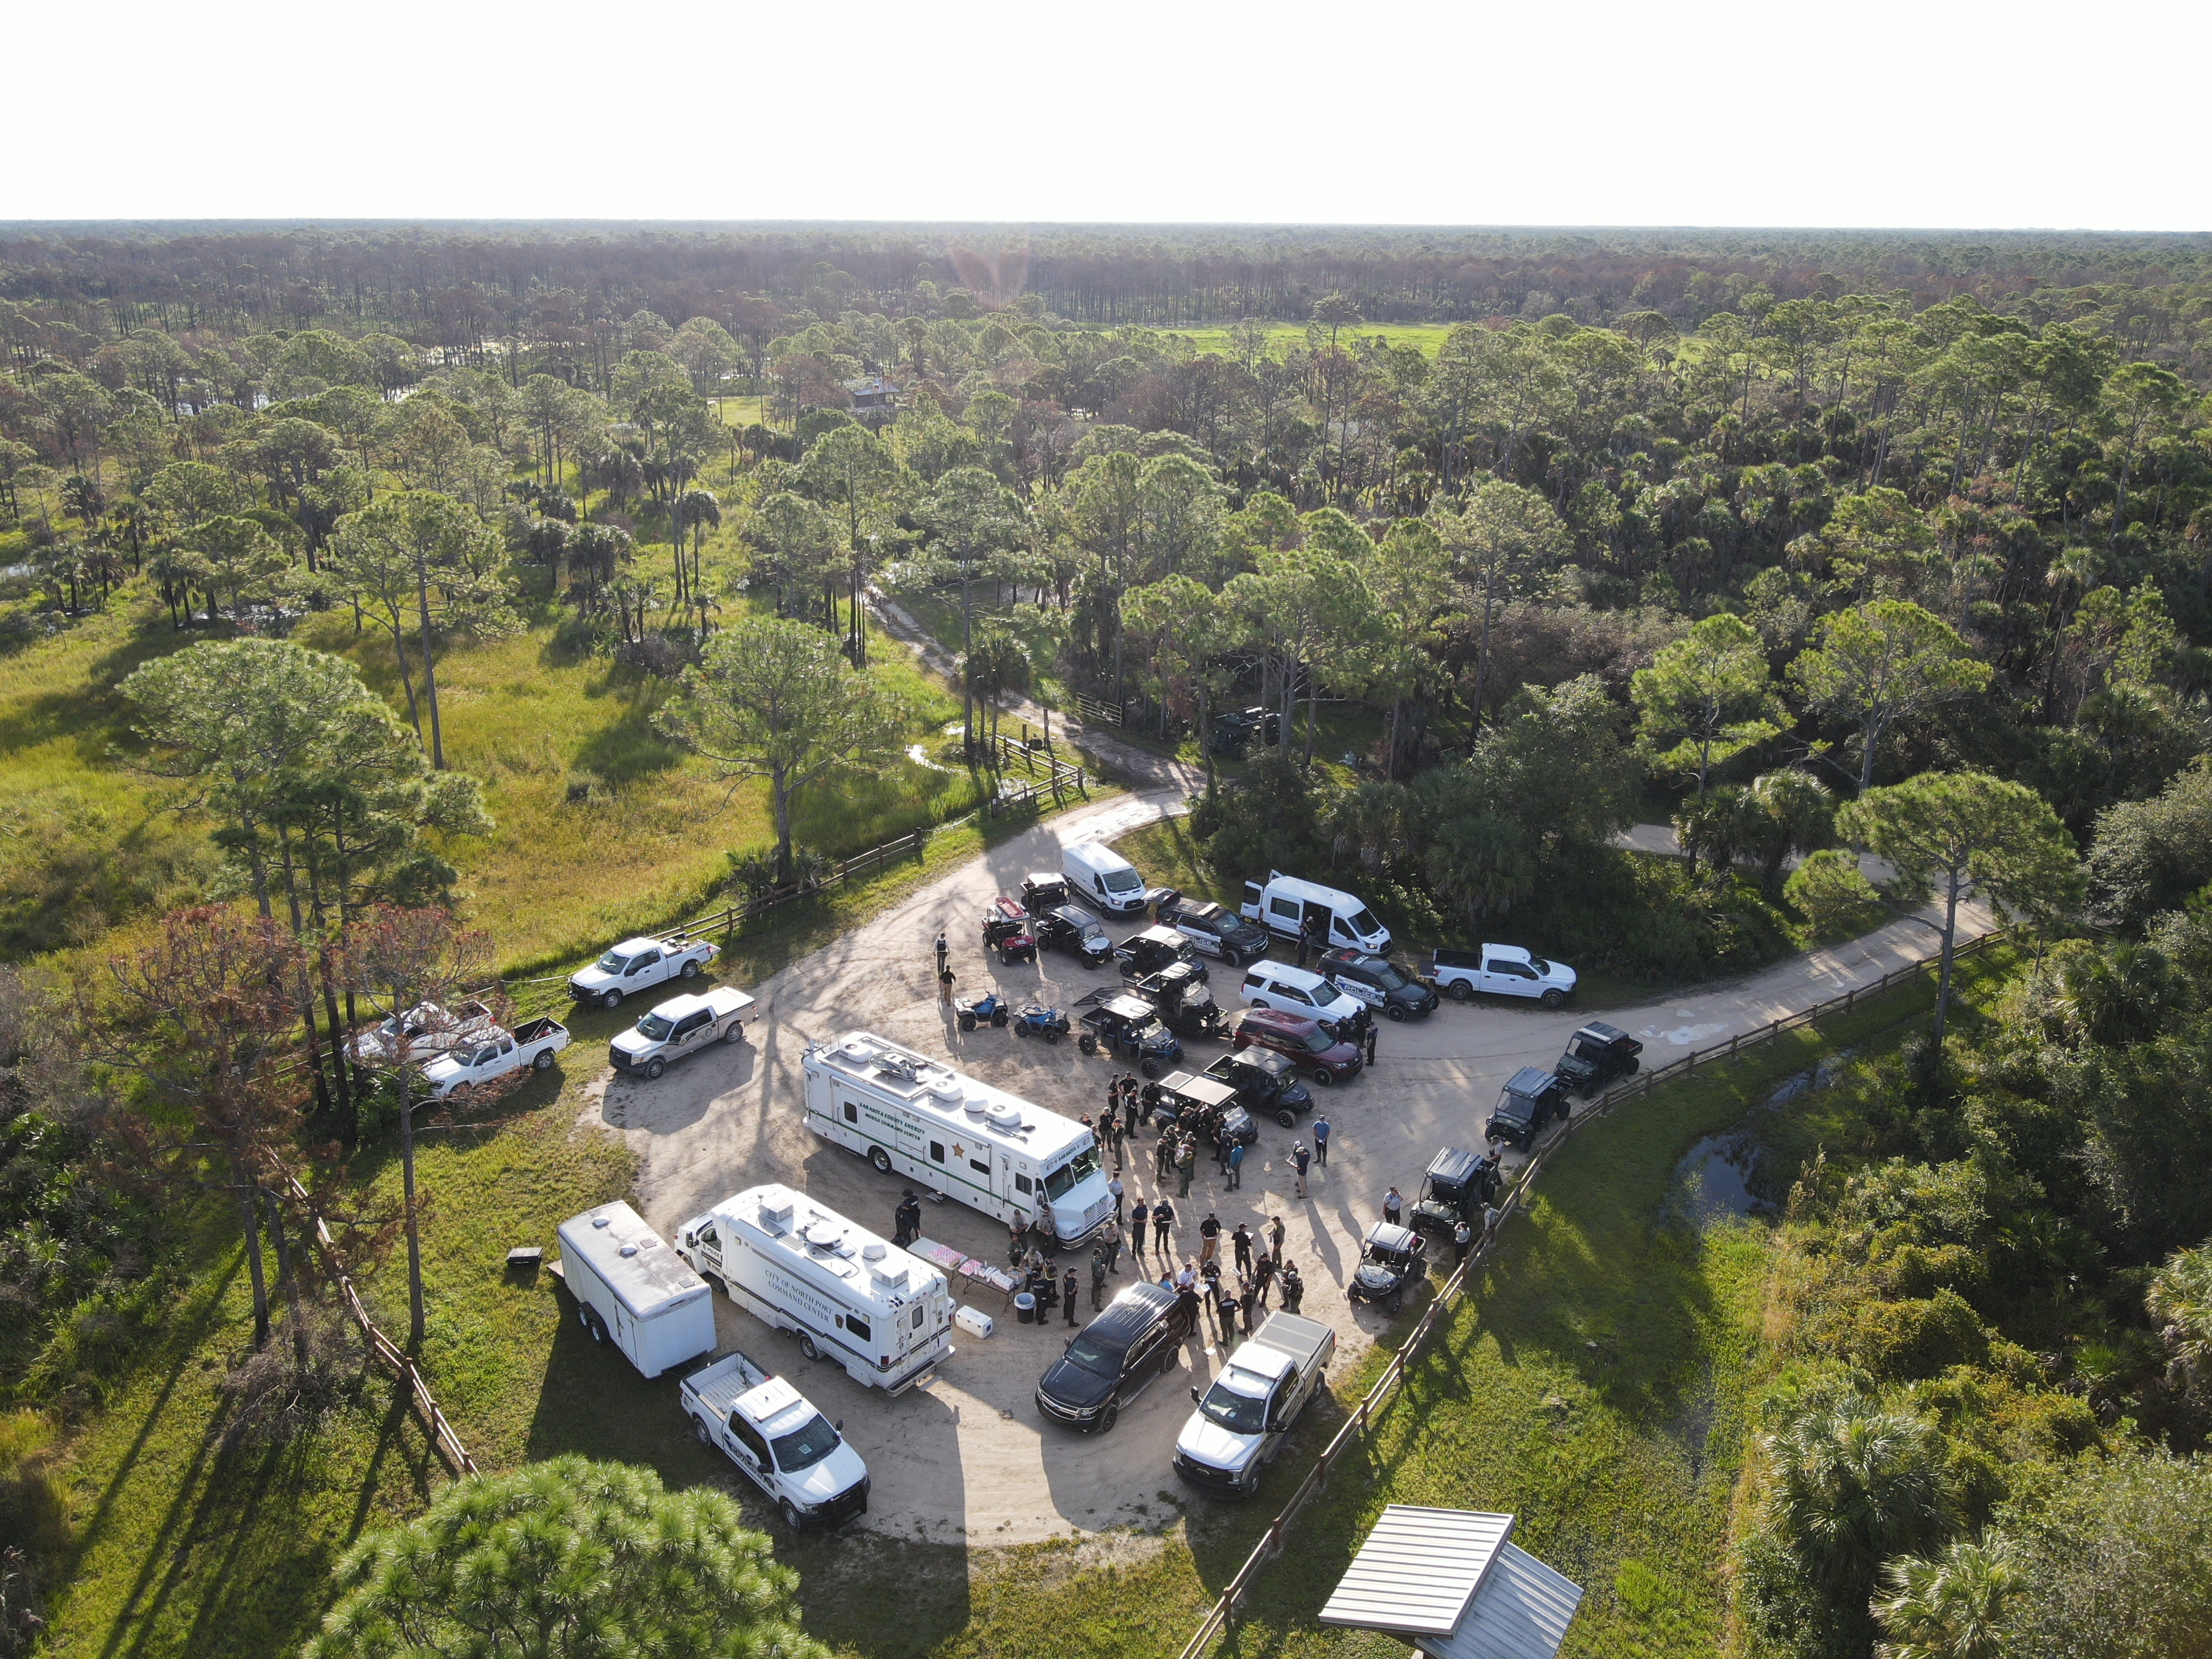 Drone footage of the Carlton Reserve in Florida from the North Port Police Department, which is searching for Brian Laundrie.